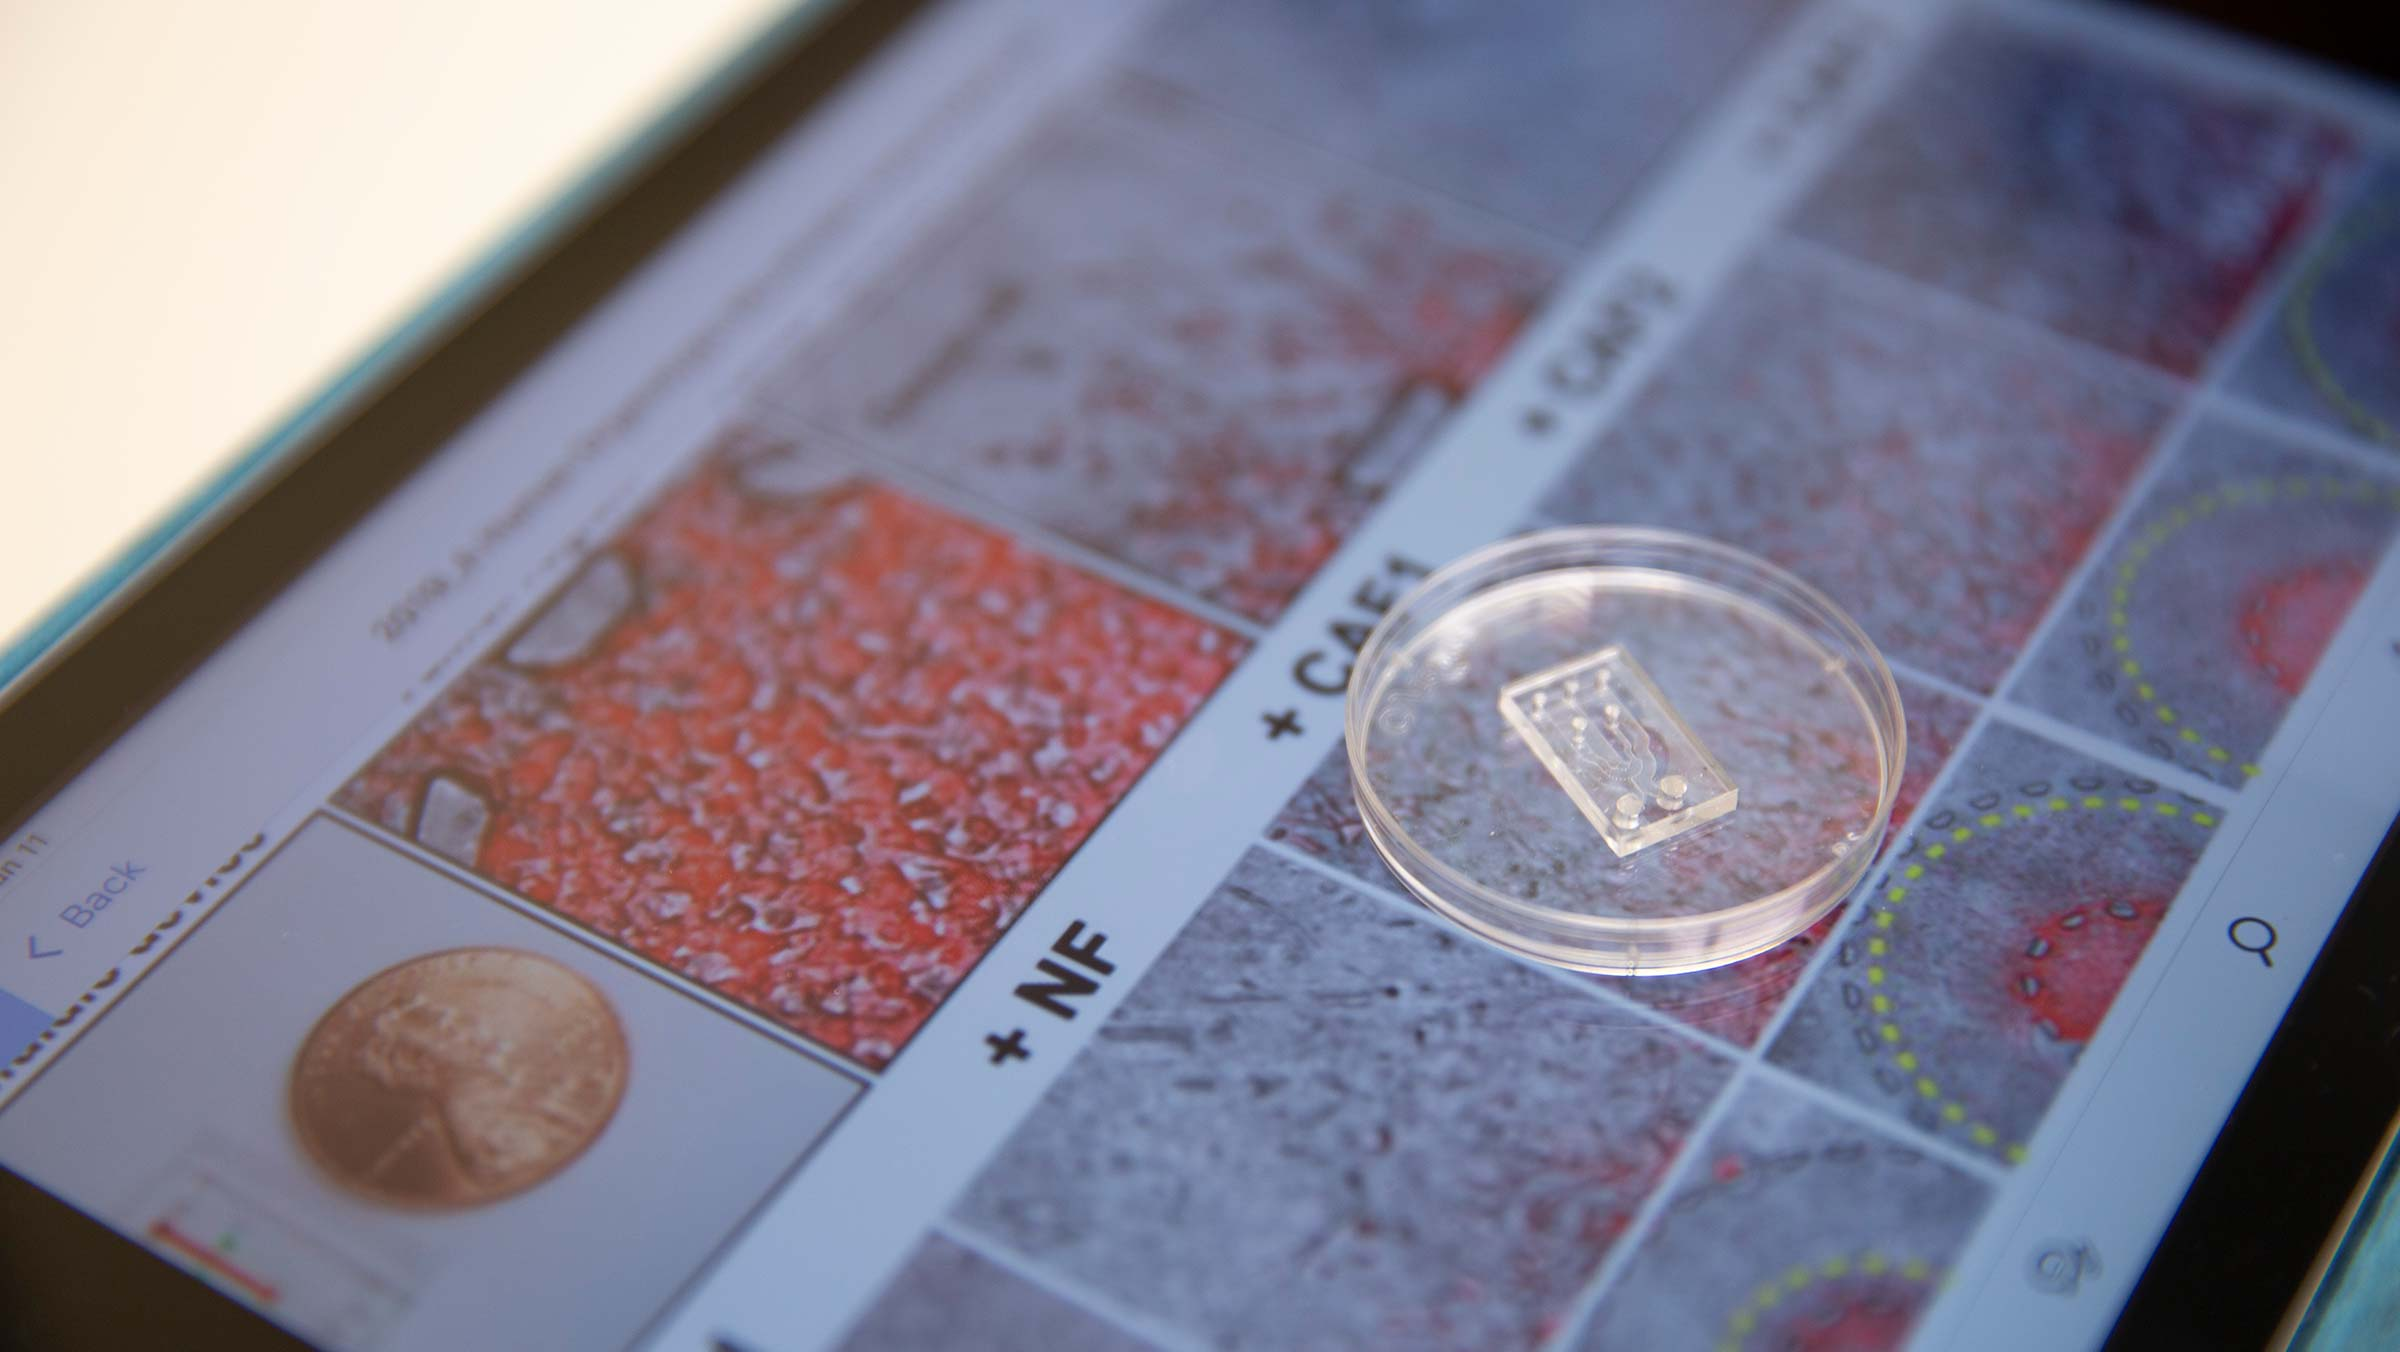 A microfluidic chip, which looks like a clear plastic microchip, sits on top of images of cancer cells and fibroblast cells